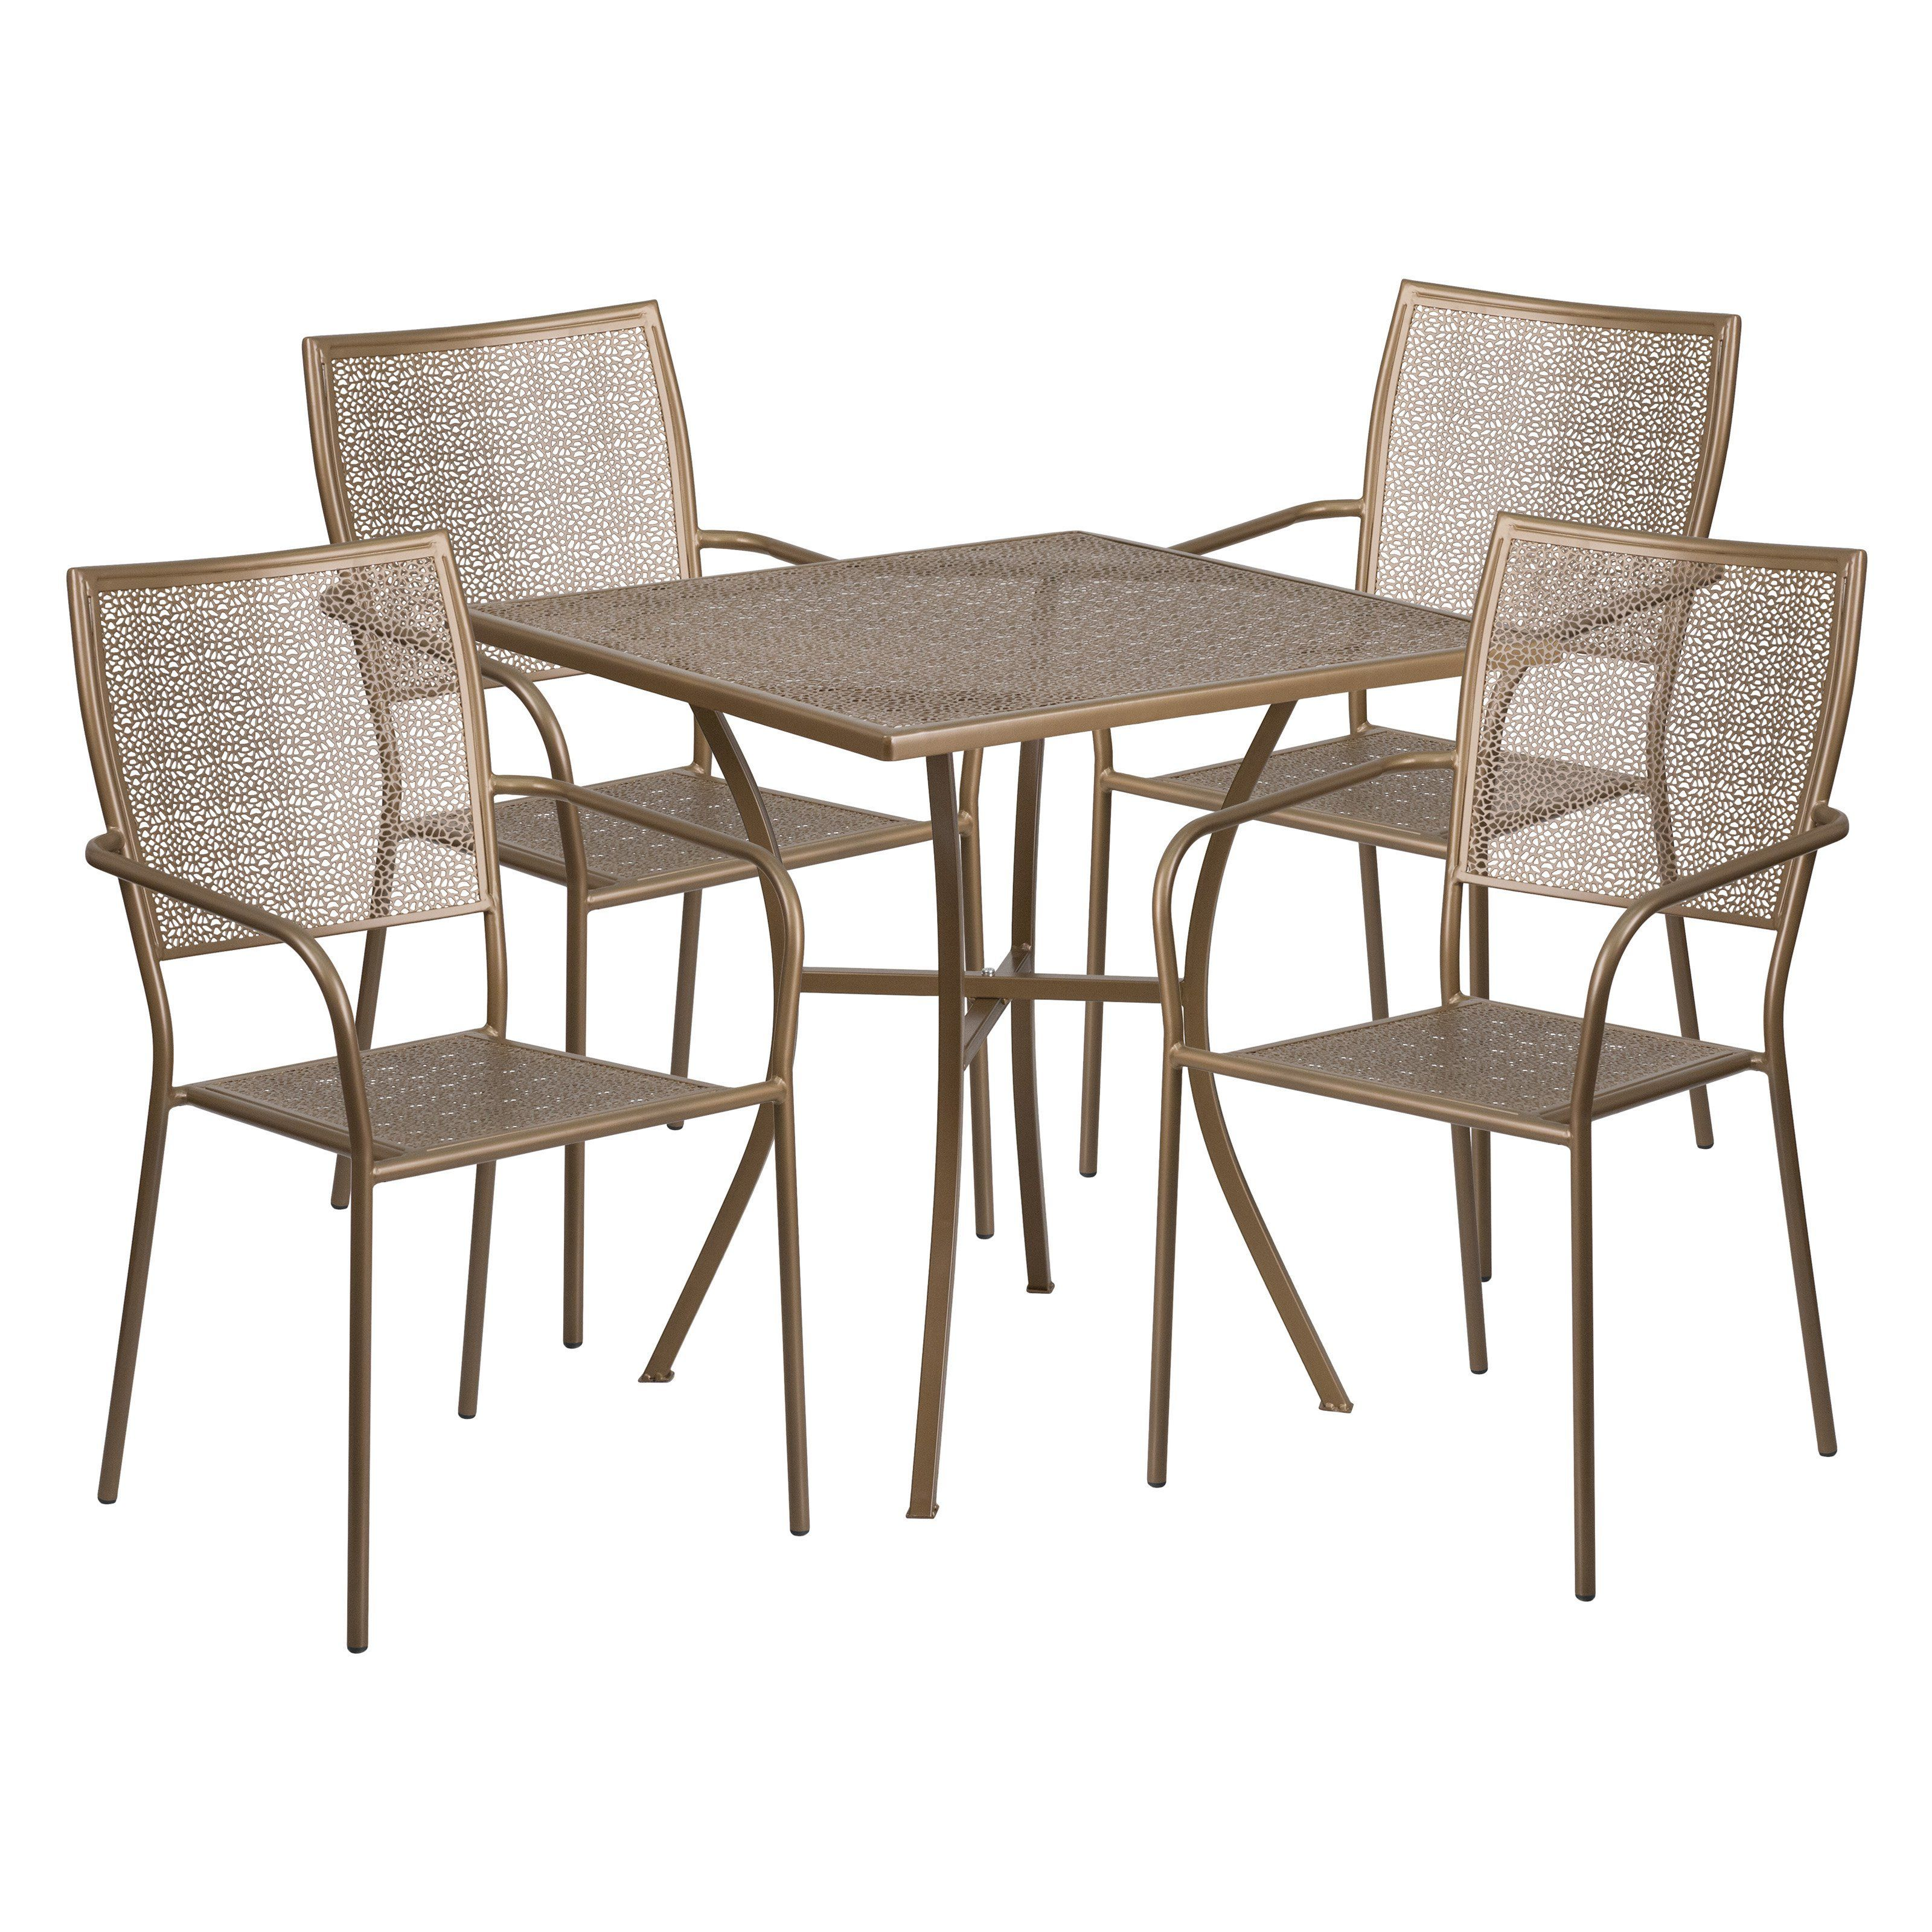 Outdoor Flash Furniture Steel Square Patio Dining Set Co 28sq